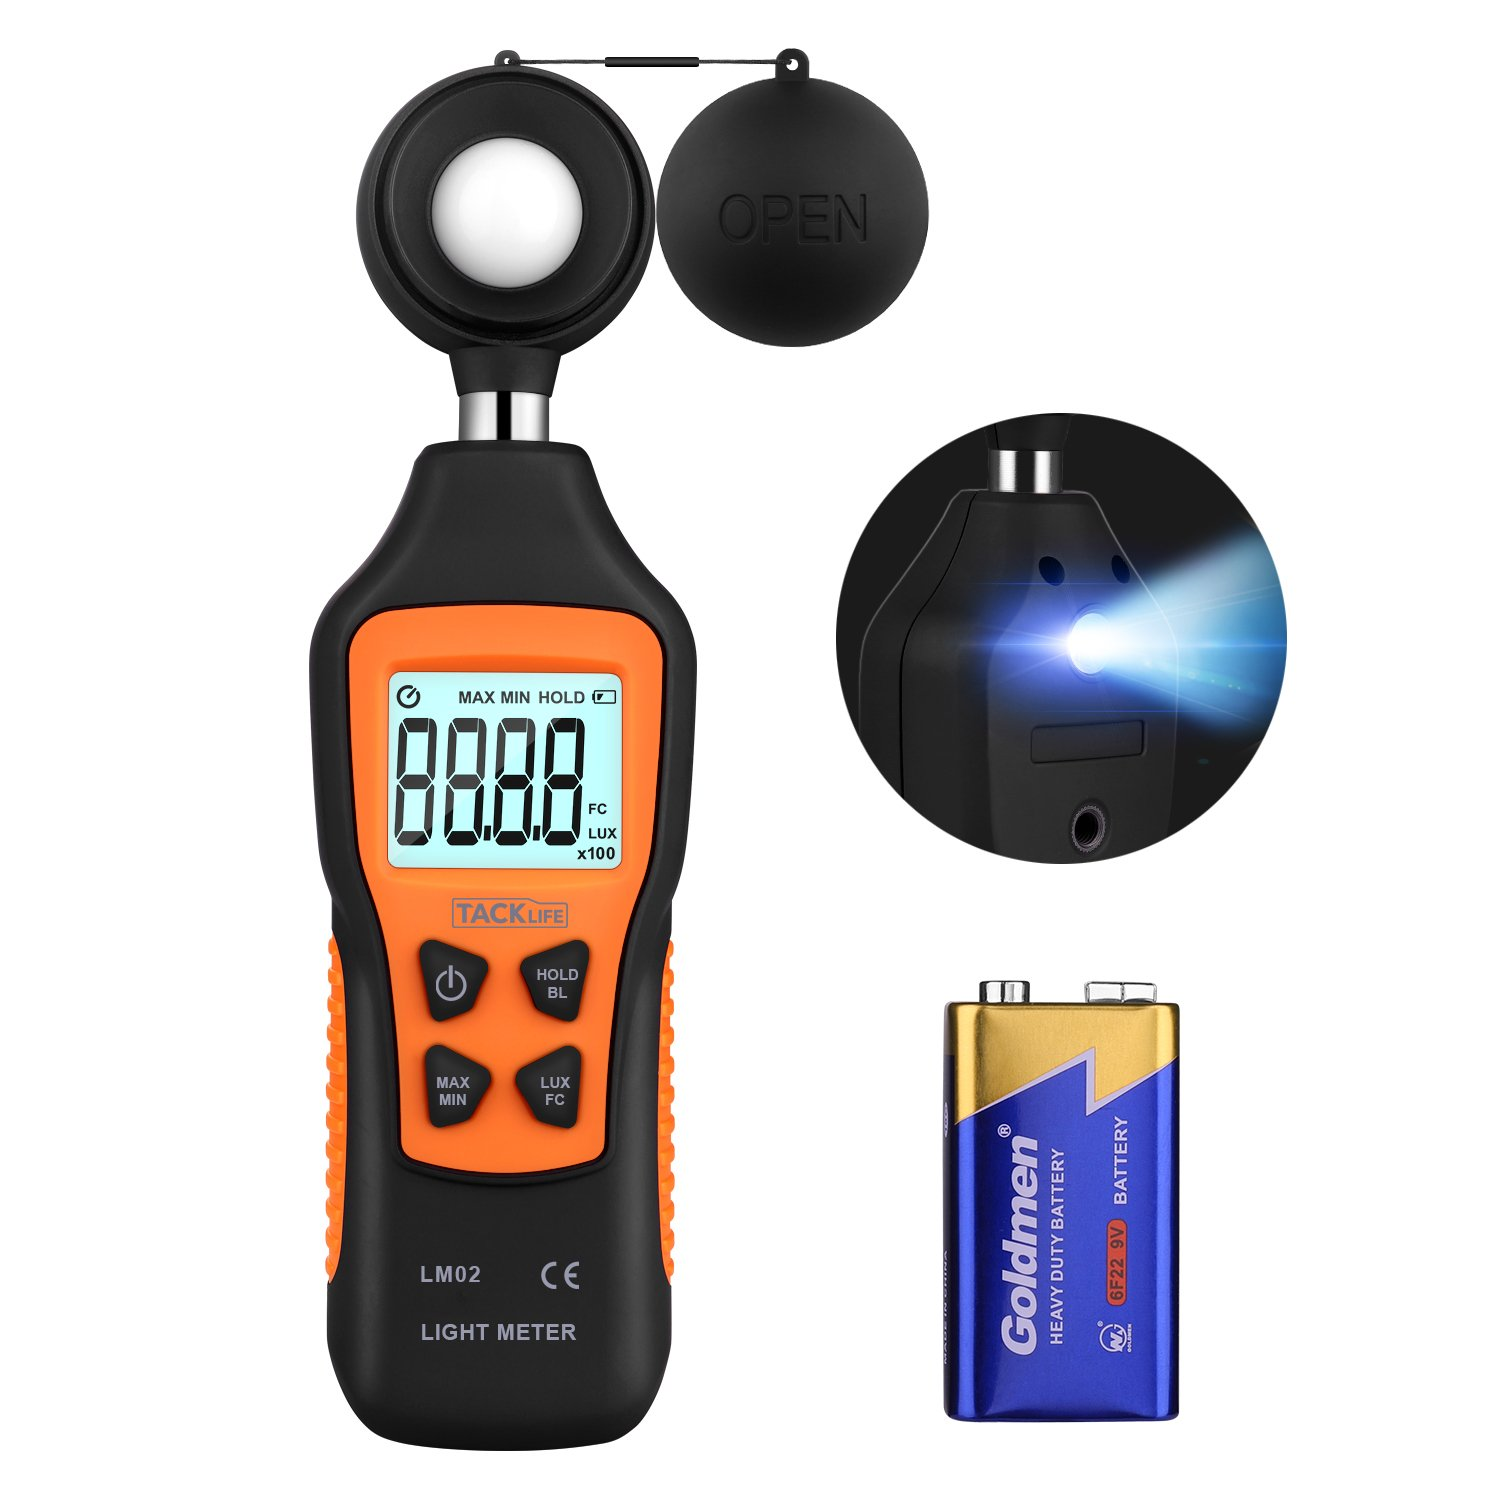 Light Meter, Tacklife Handheld Digital Illuminance Meter with High Accuracy(±4%), 0-200000Lux/0-20000FC, Blacklight & Flashlight, MAX/MIN/Data Hold, Battery Included - LM02